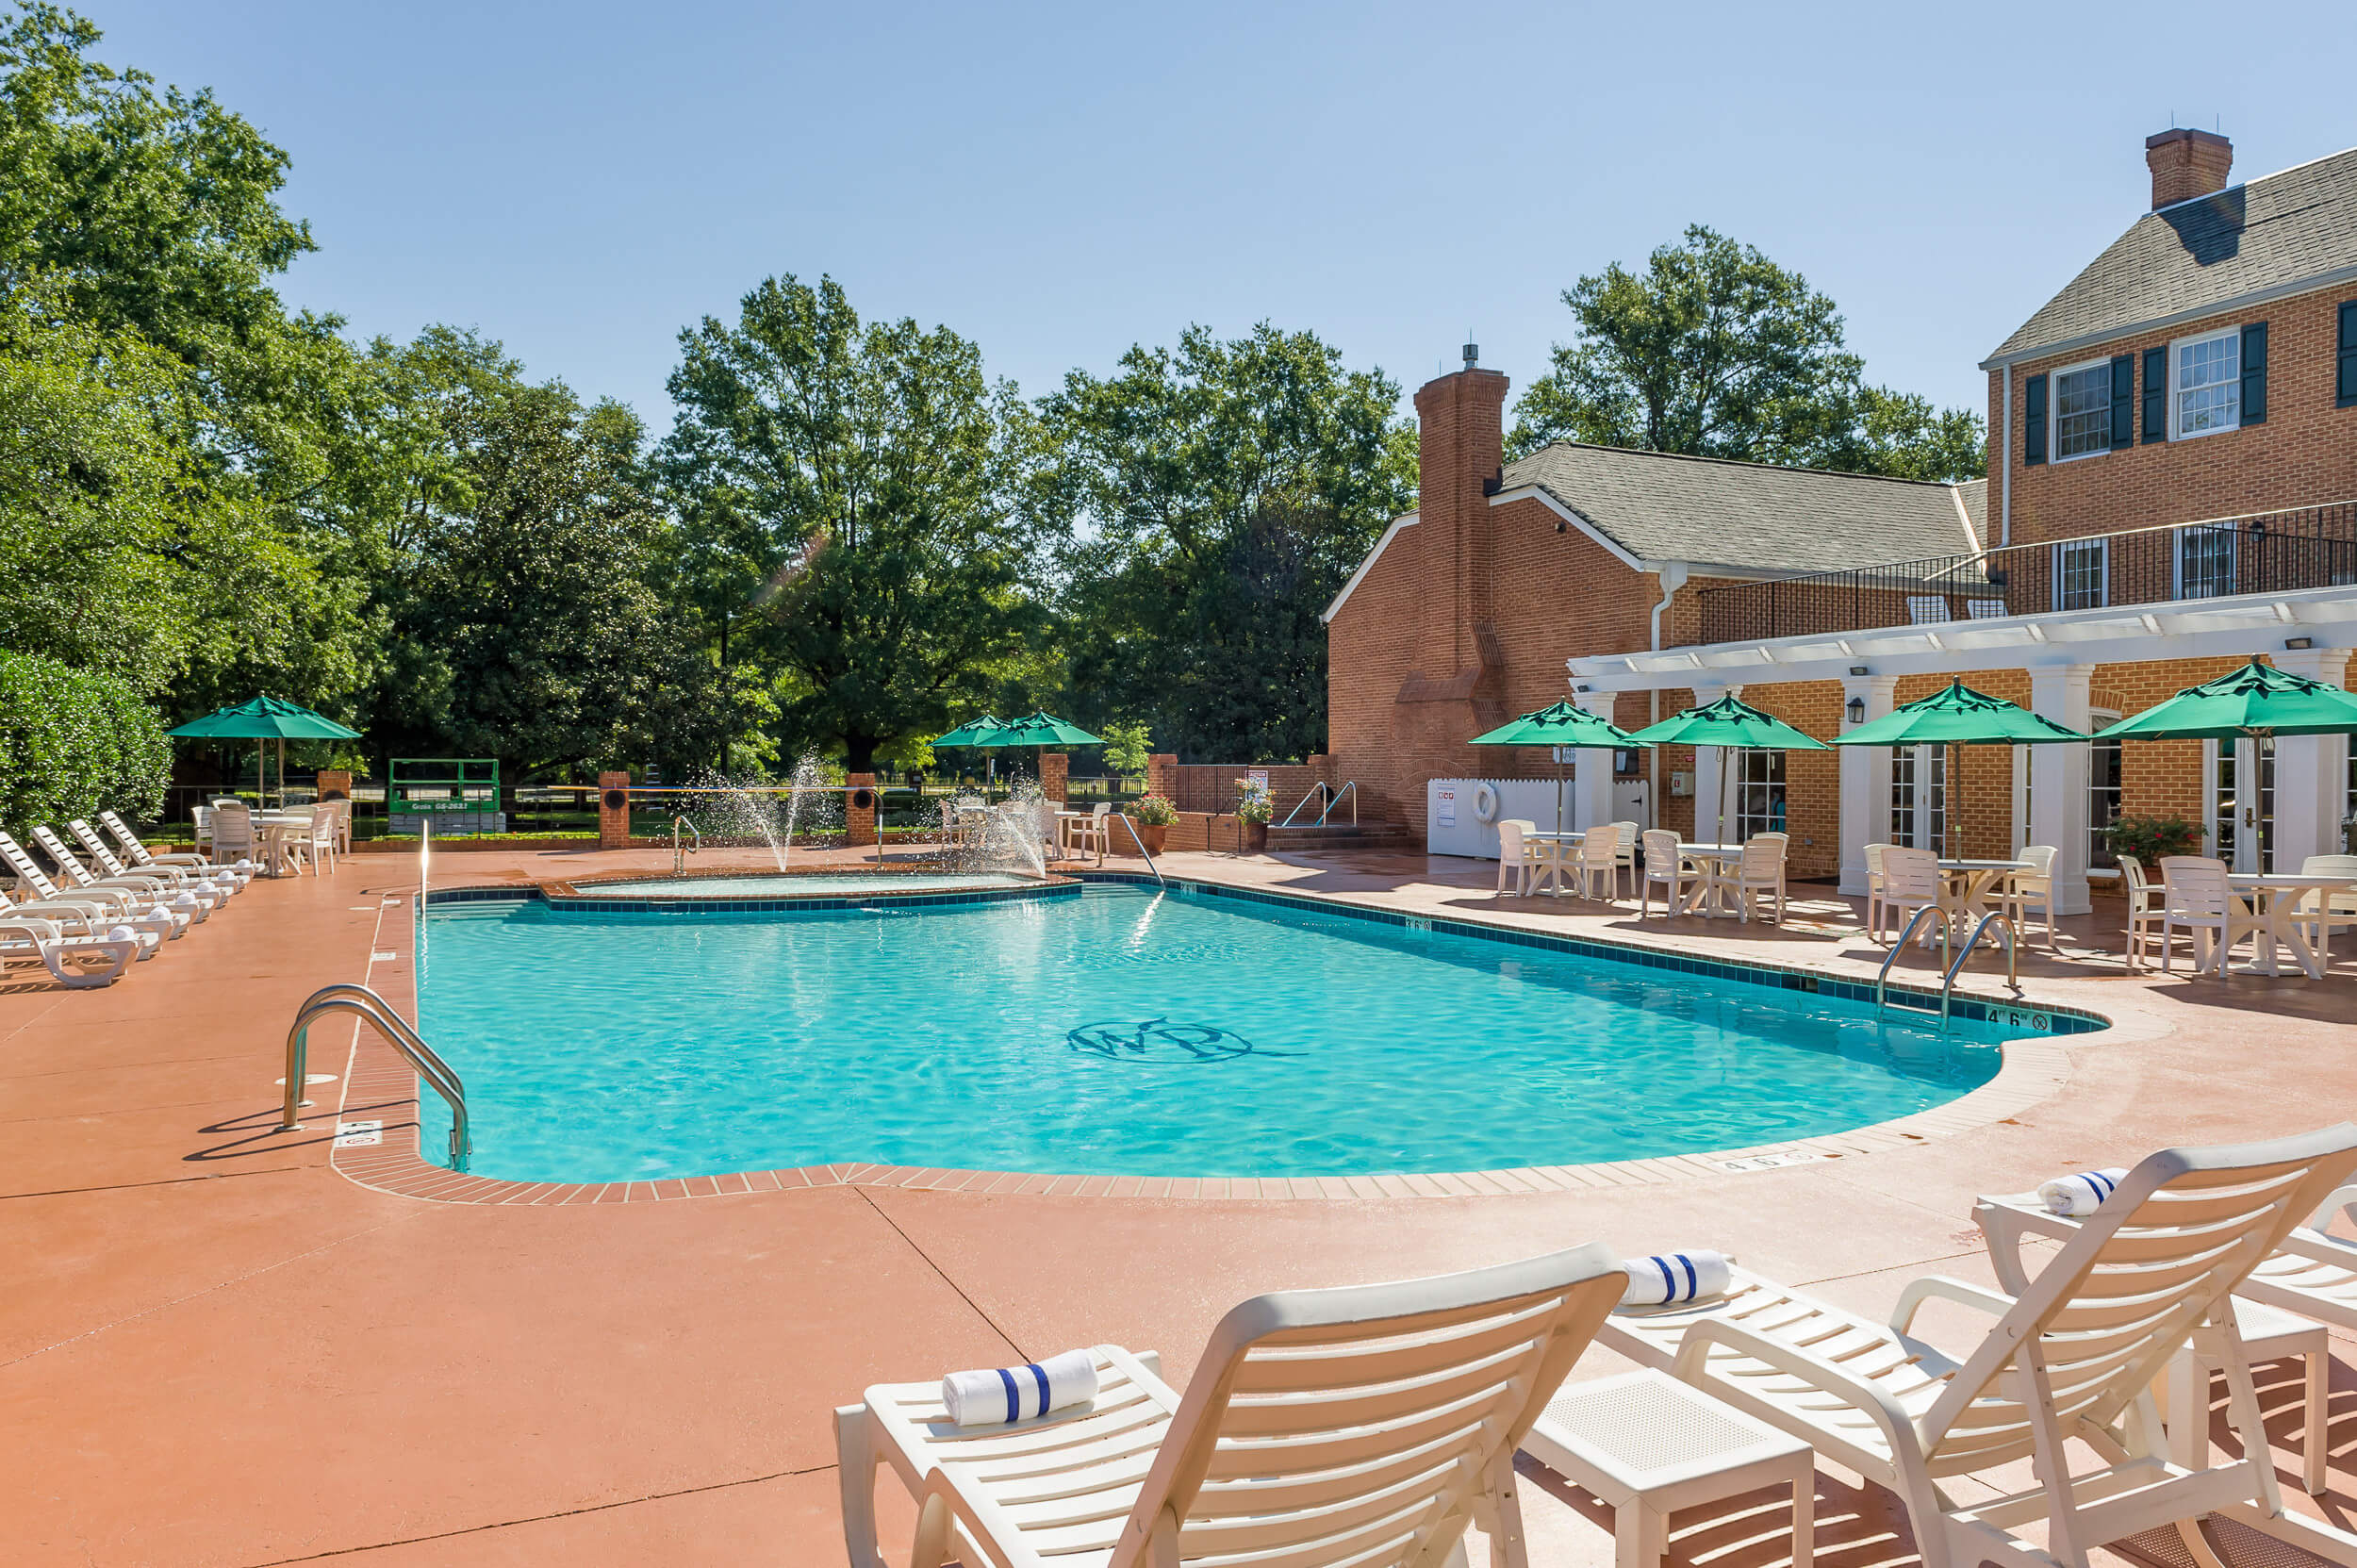 Heated outdoor pool with hot tub and lounge chairs | Westgate Historic Williamsburg Resort